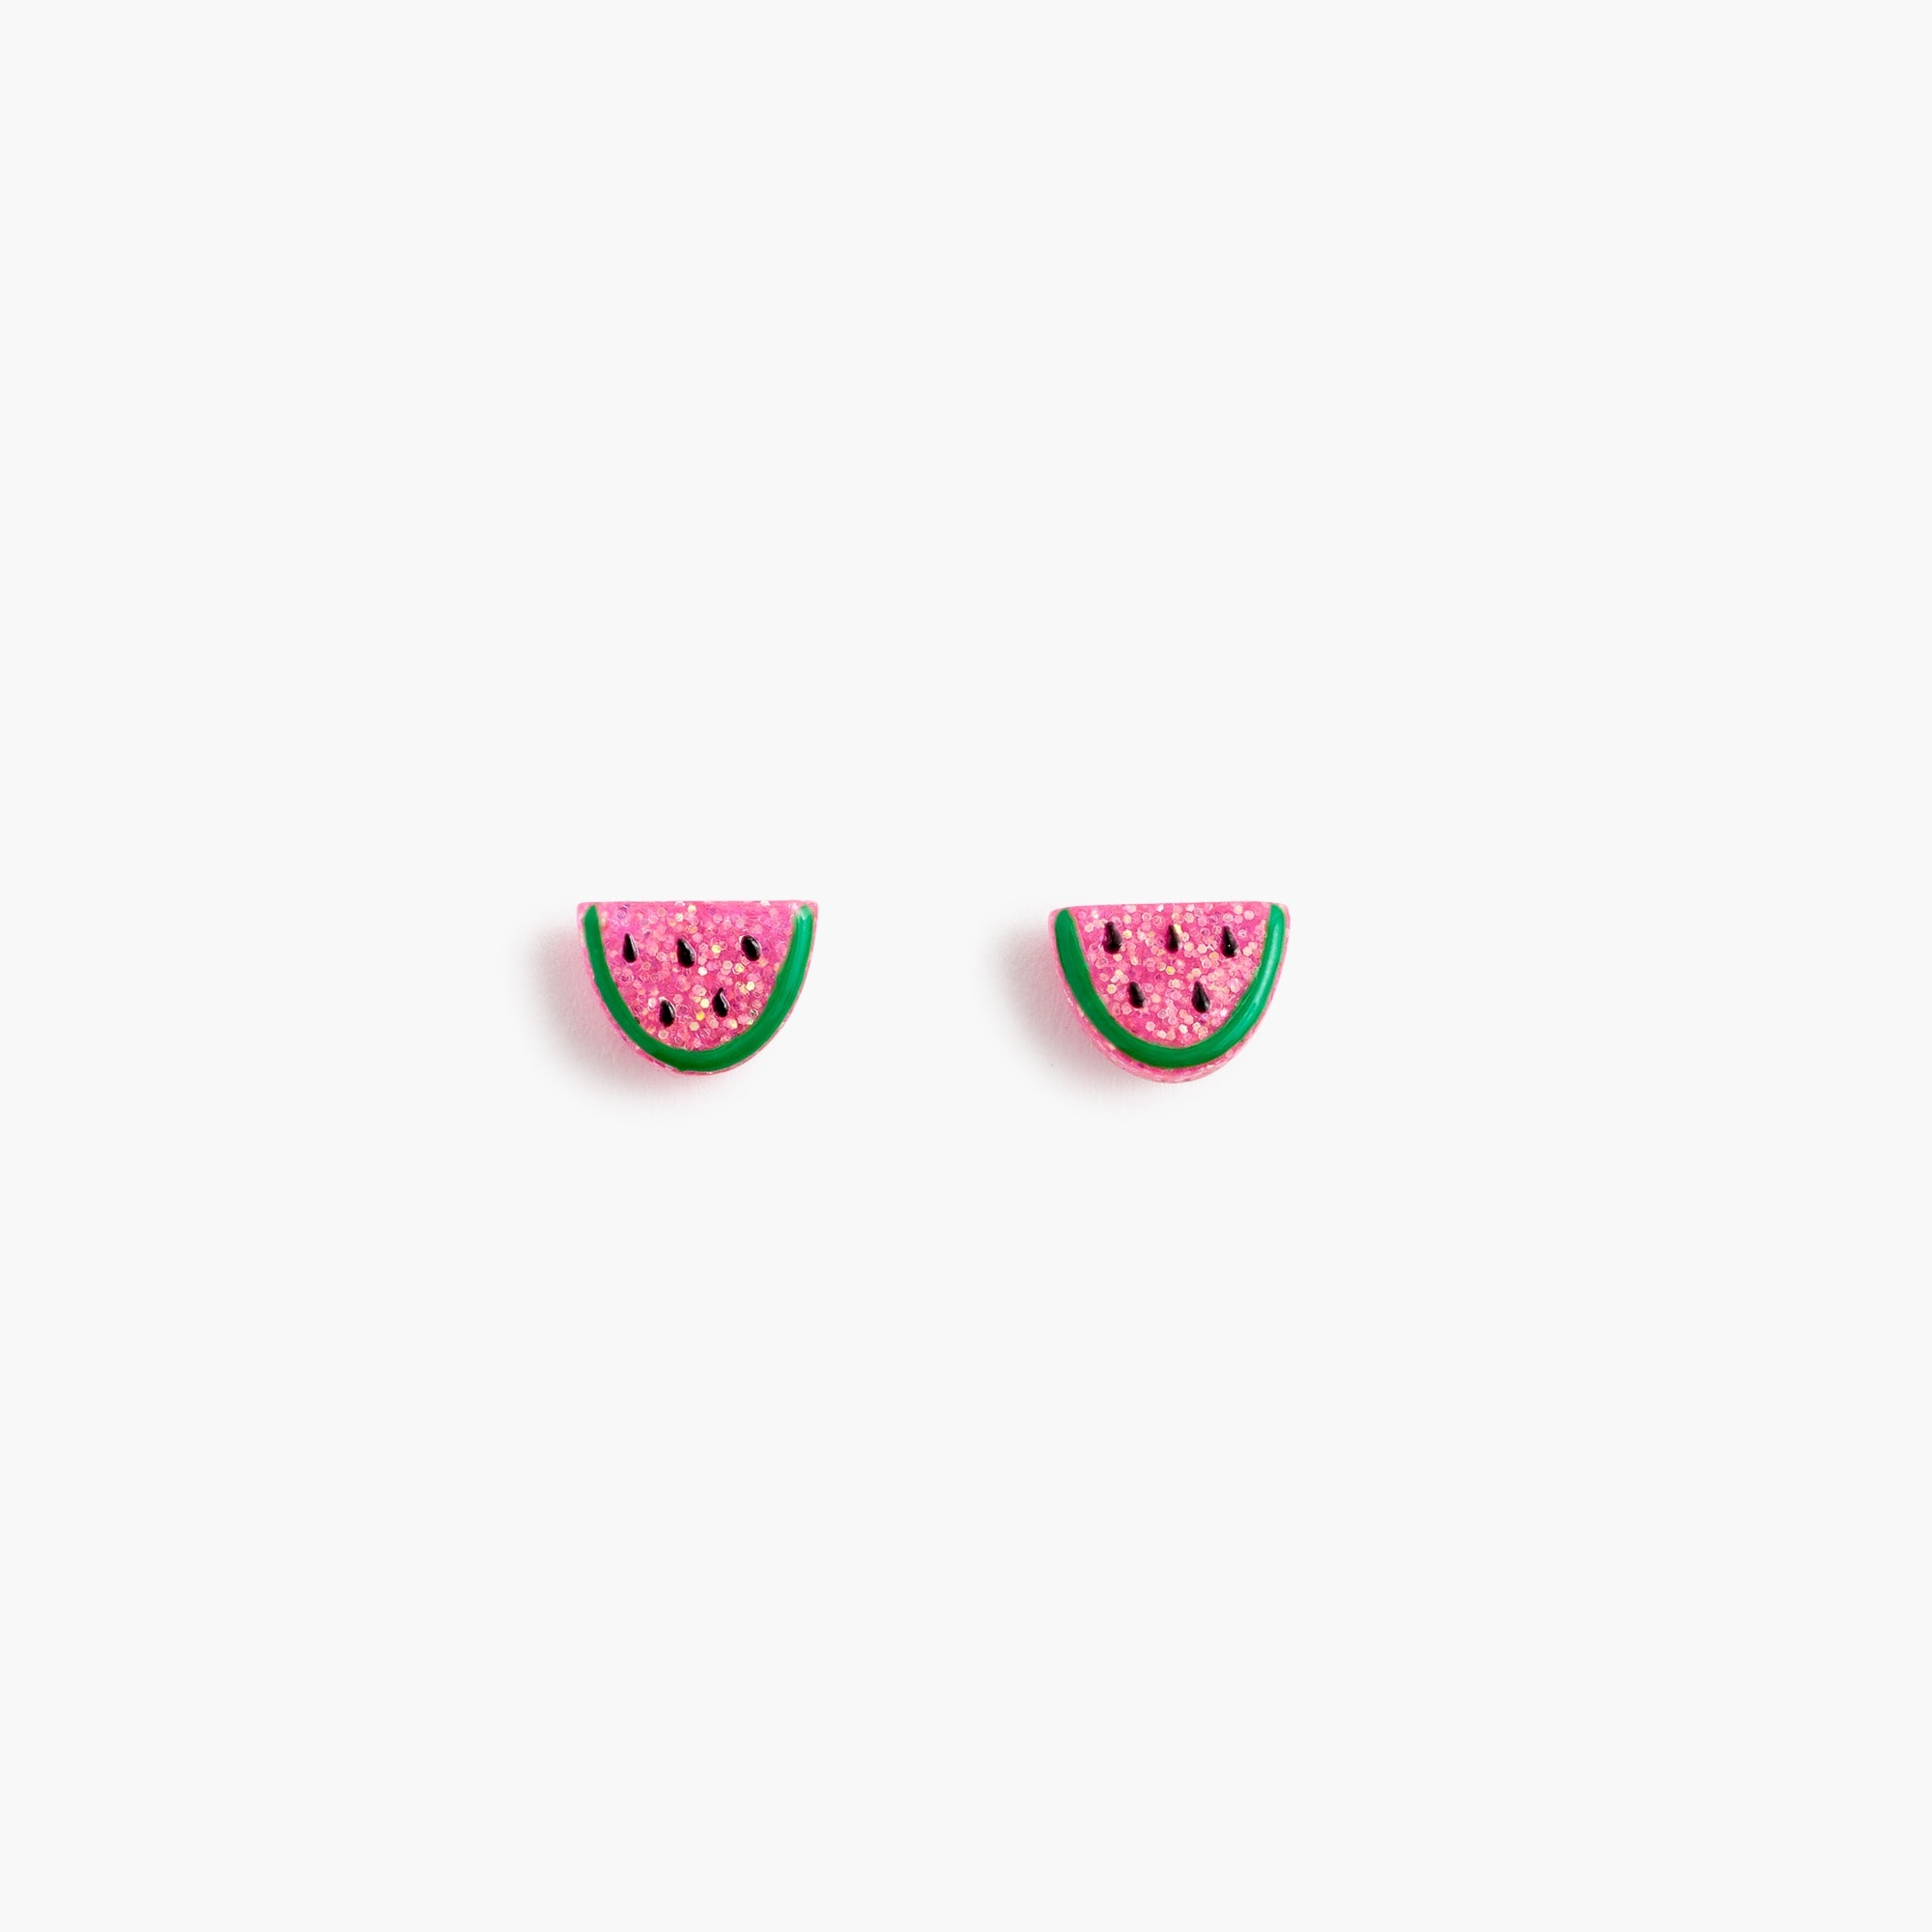 Girls' watermelon stud earrings girl jewelry & accessories c